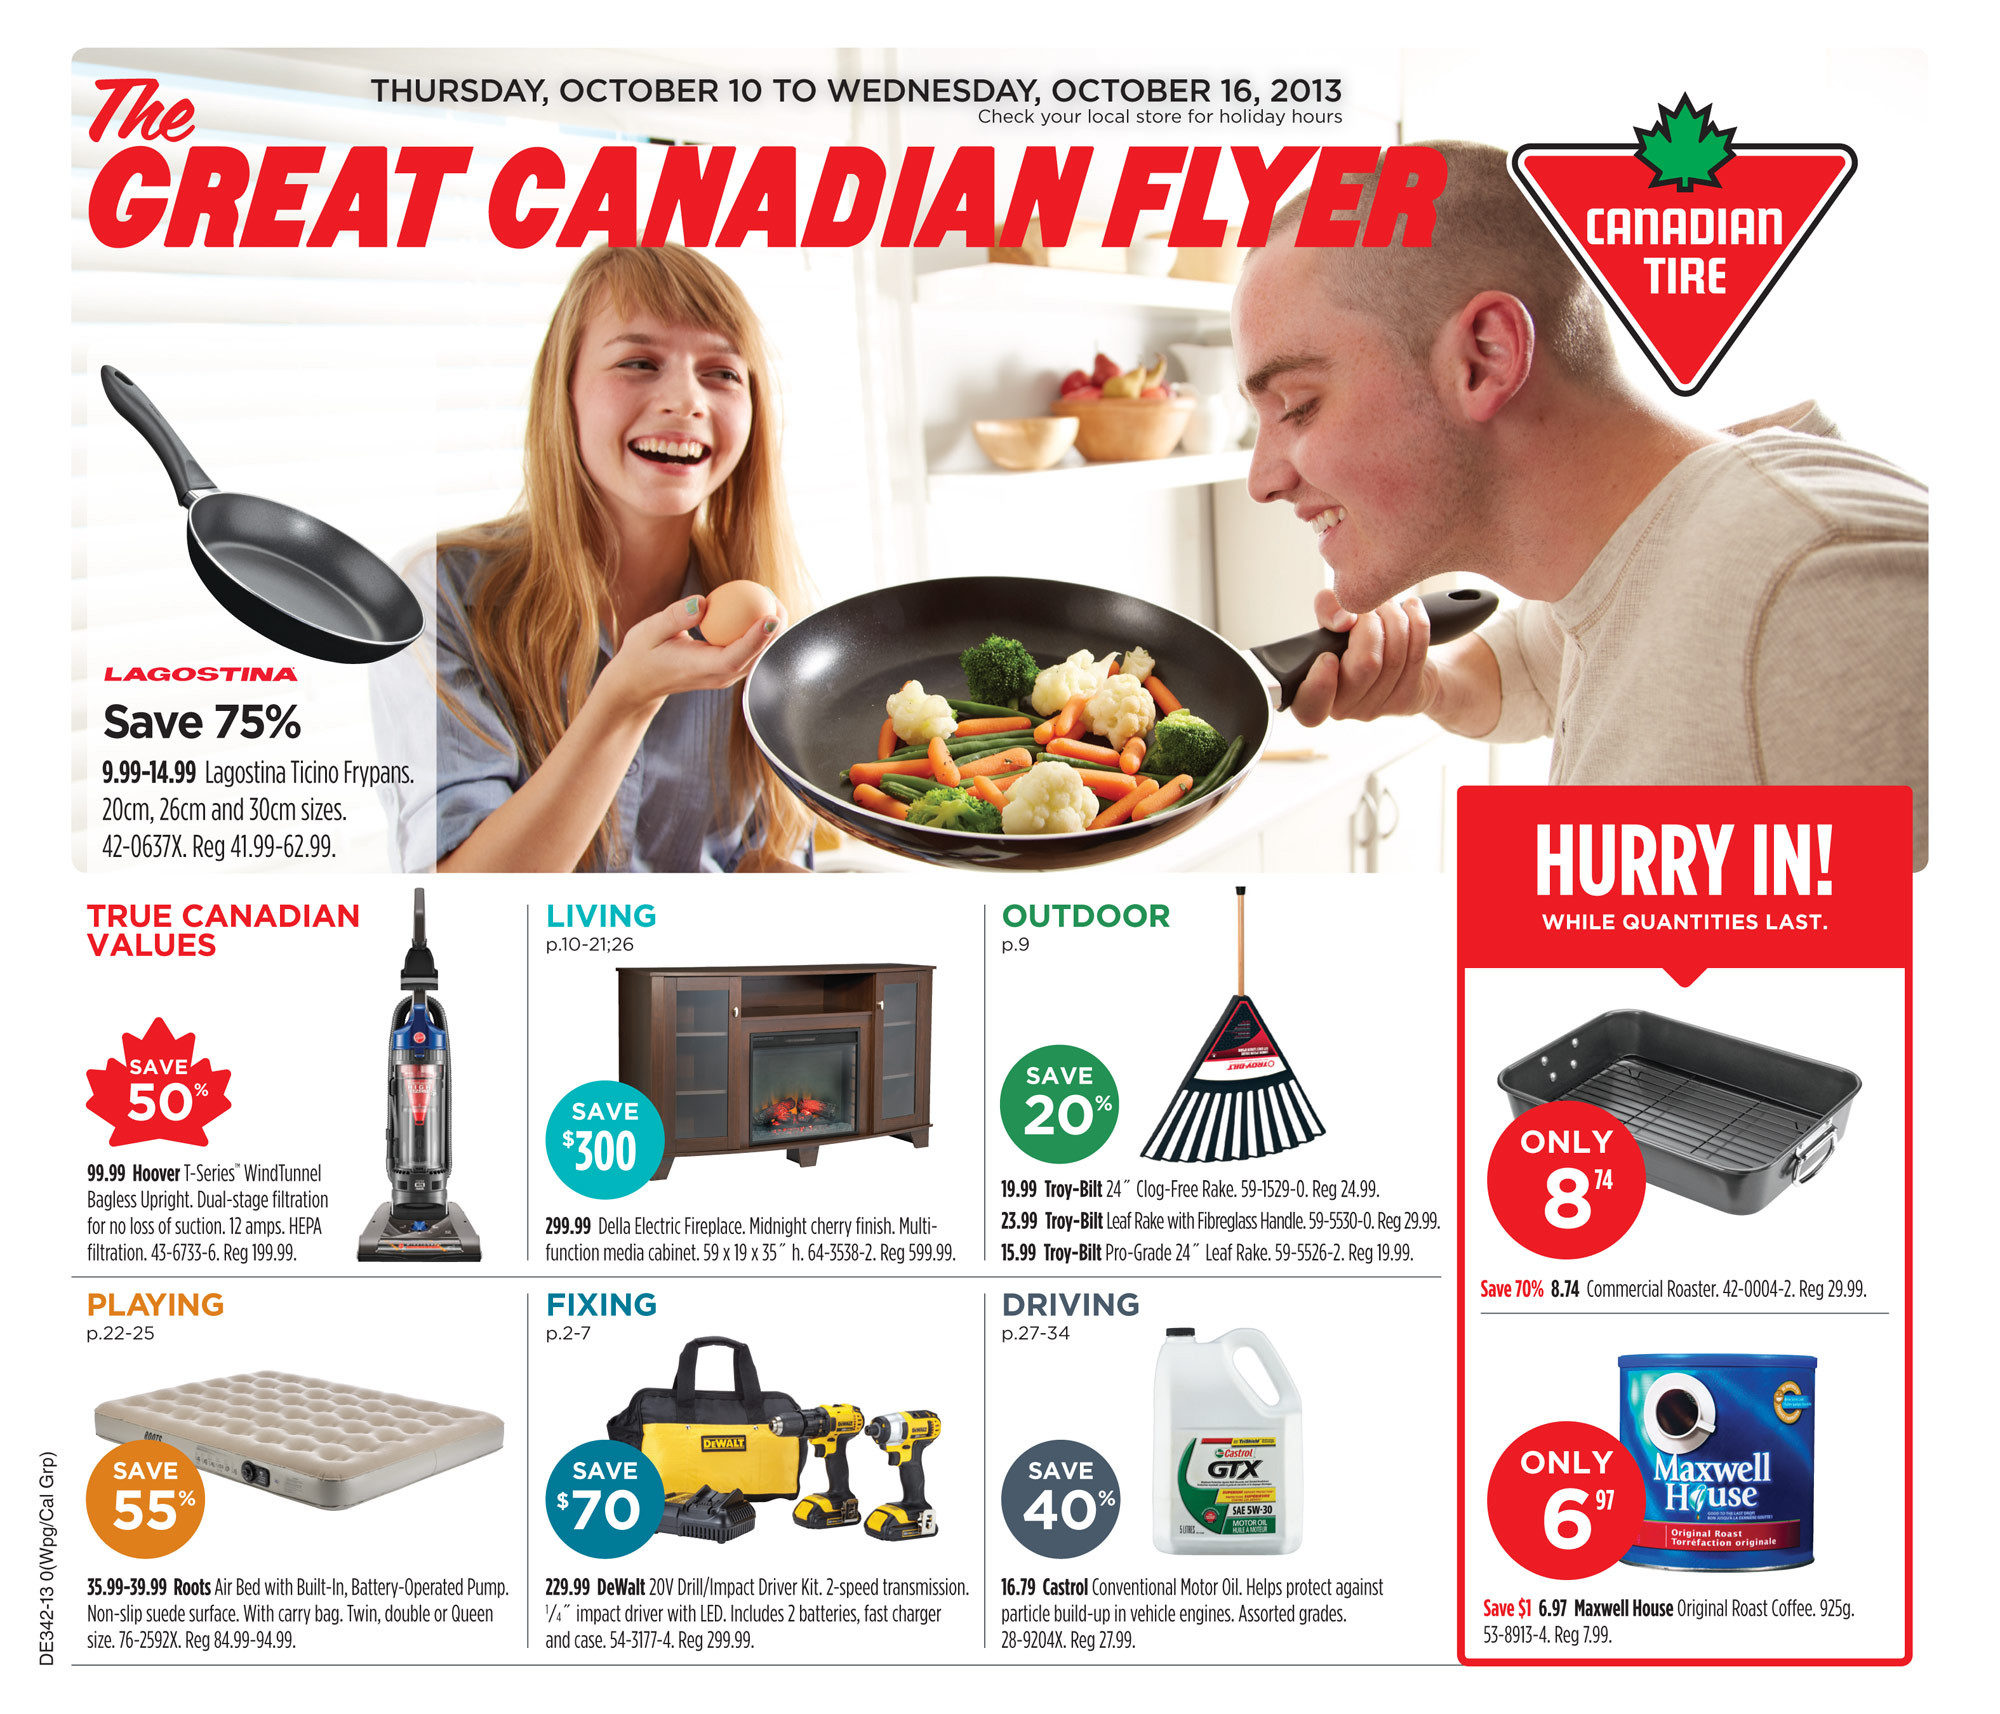 Canadian Tire Weekly Flyer - Weekly Flyer - Oct 9 – 16